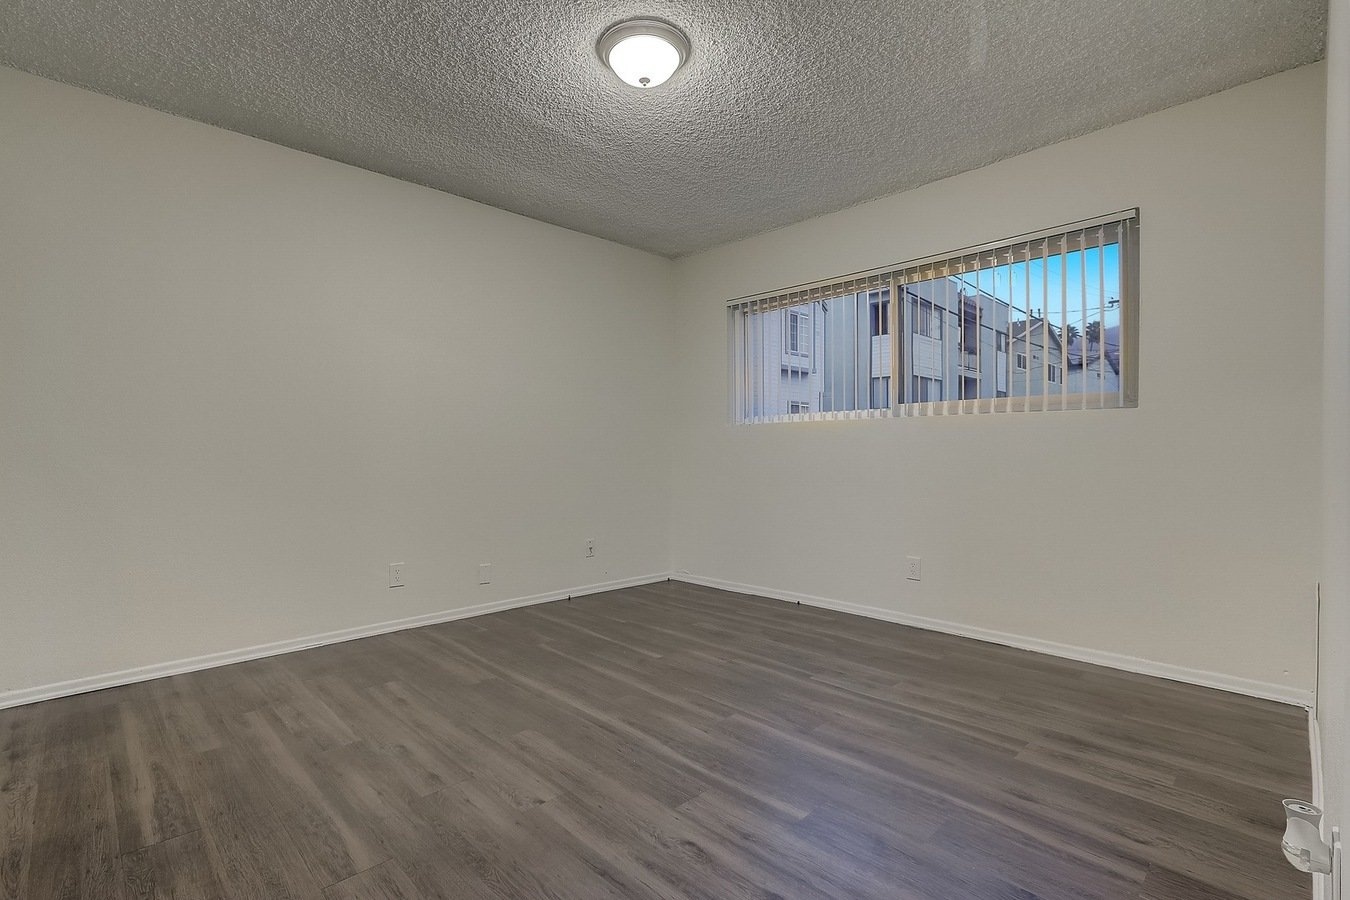 2 Bedrooms 1 Bathroom Apartment for rent at 303 in Burbank, CA